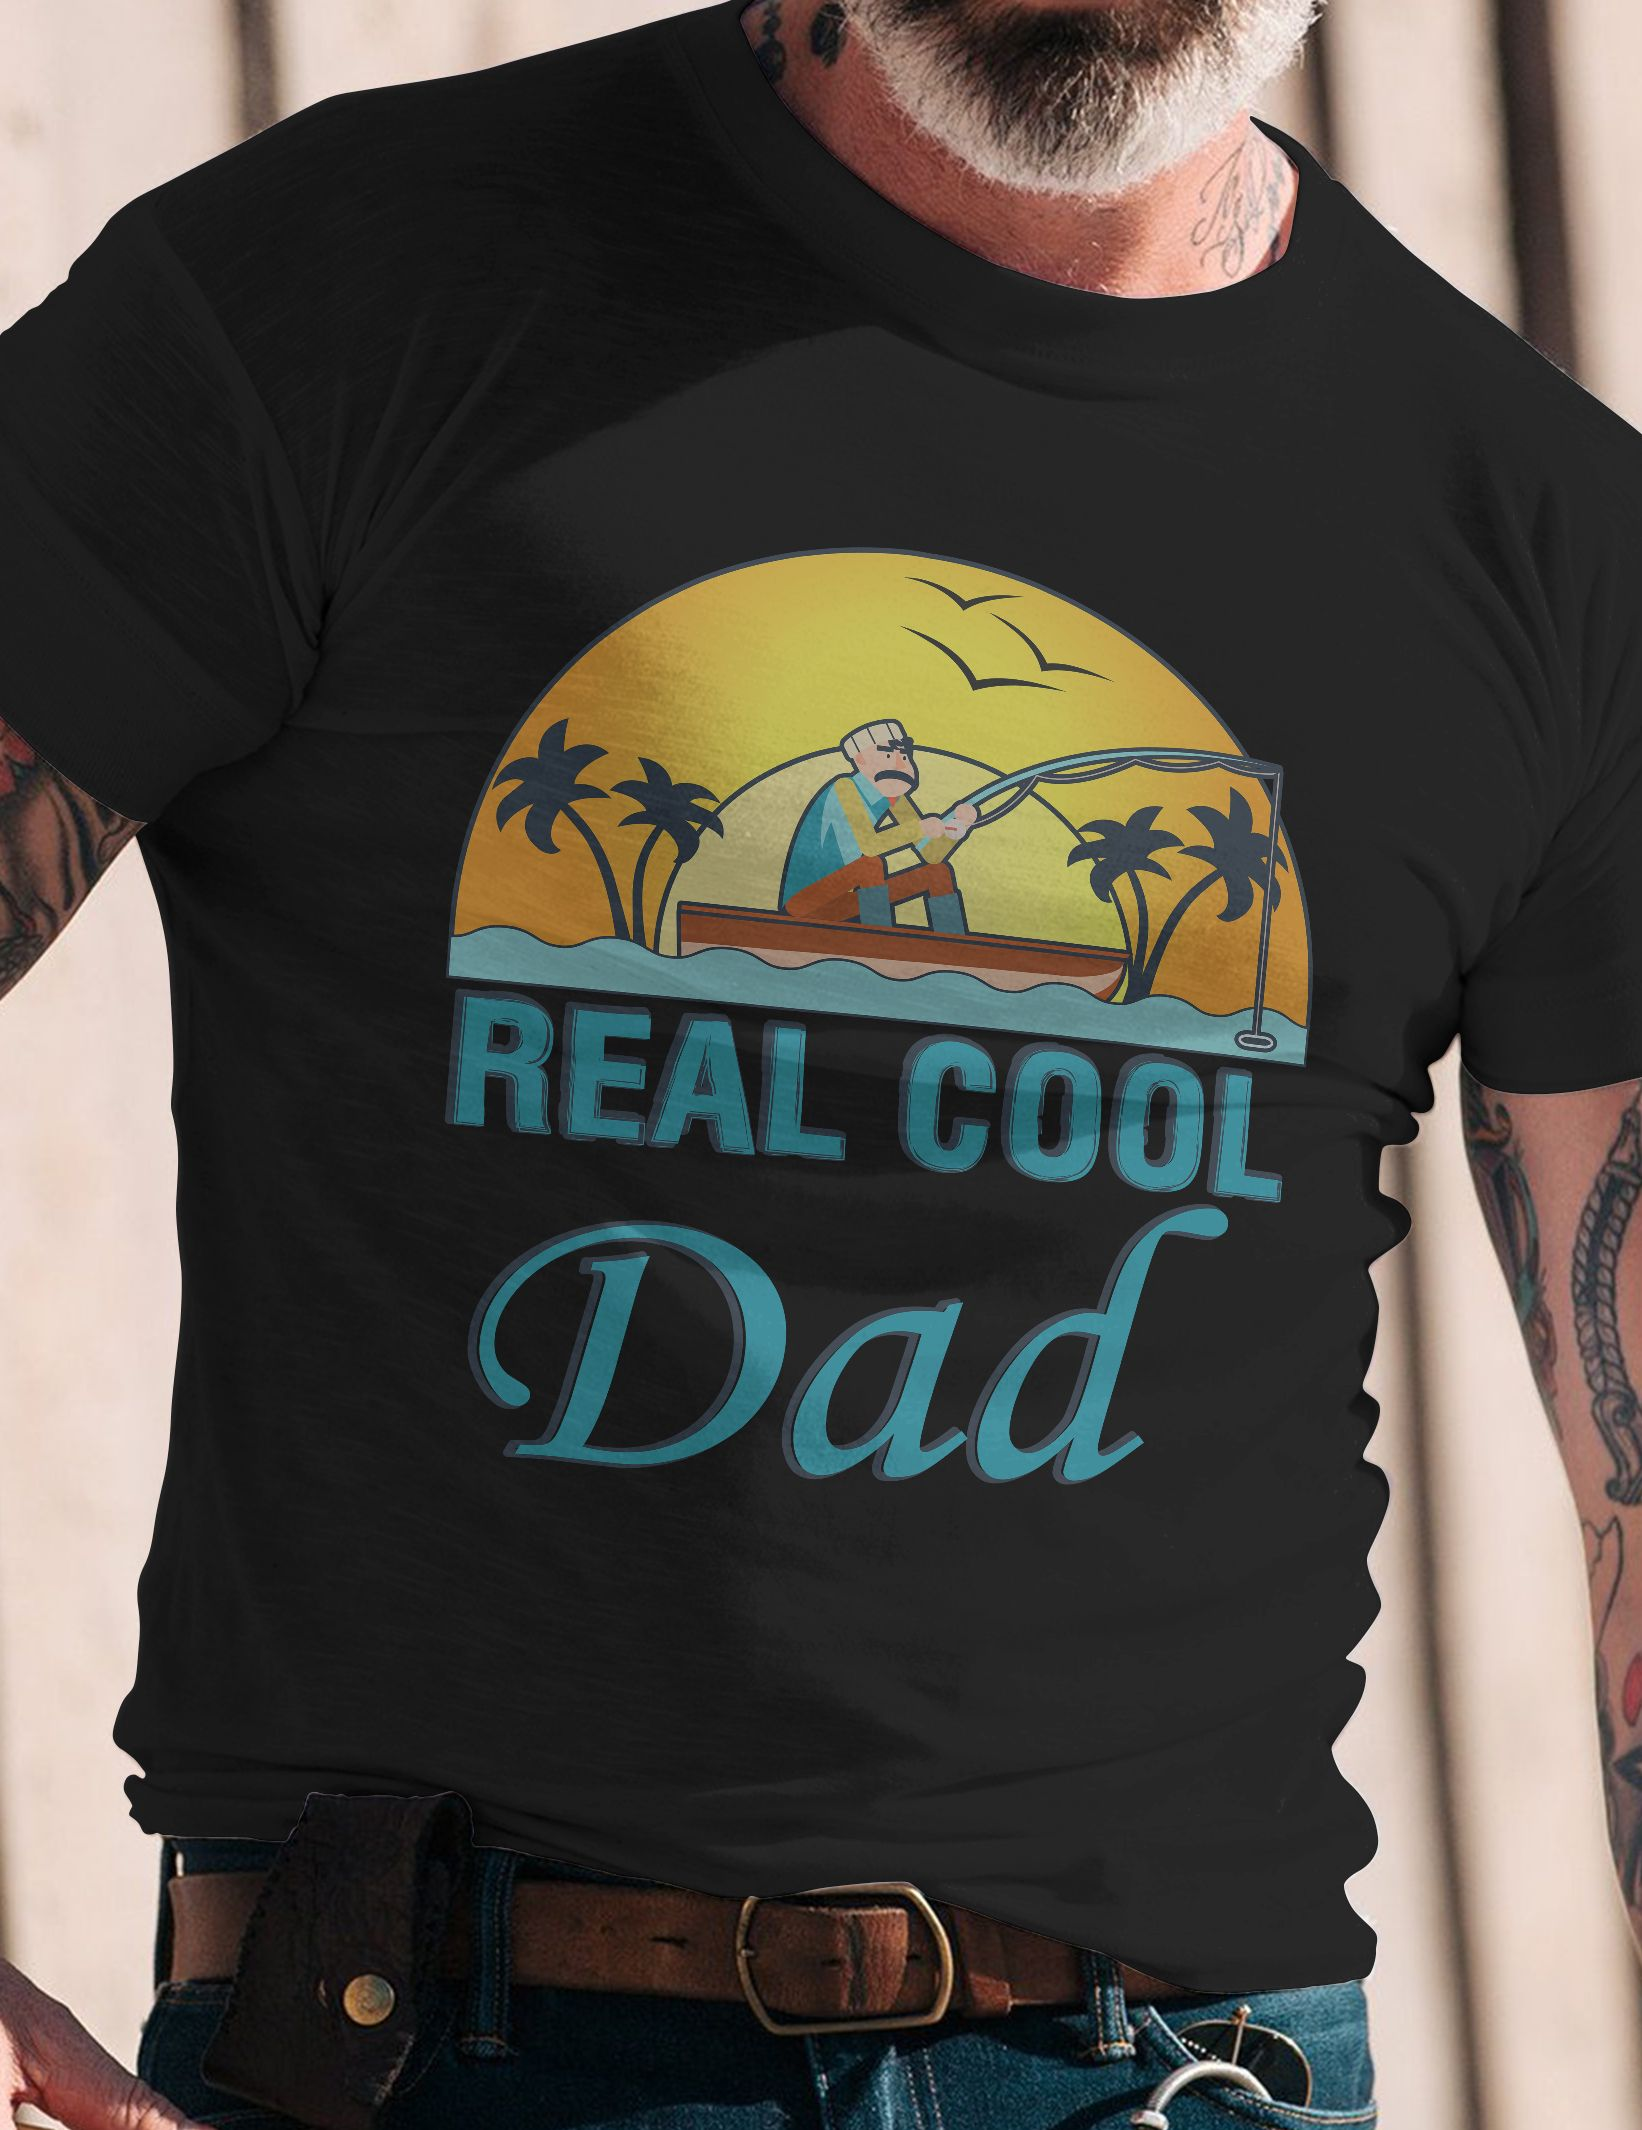 Reel Cool Dad TShirt Makes a great gift for Father\'s Day, Birthday ...